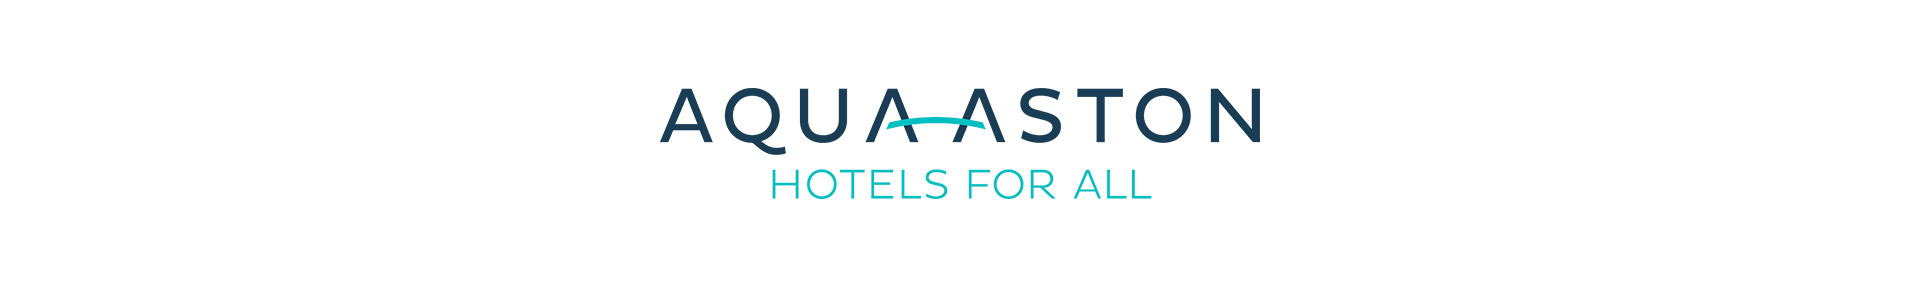 hotel-group-logo